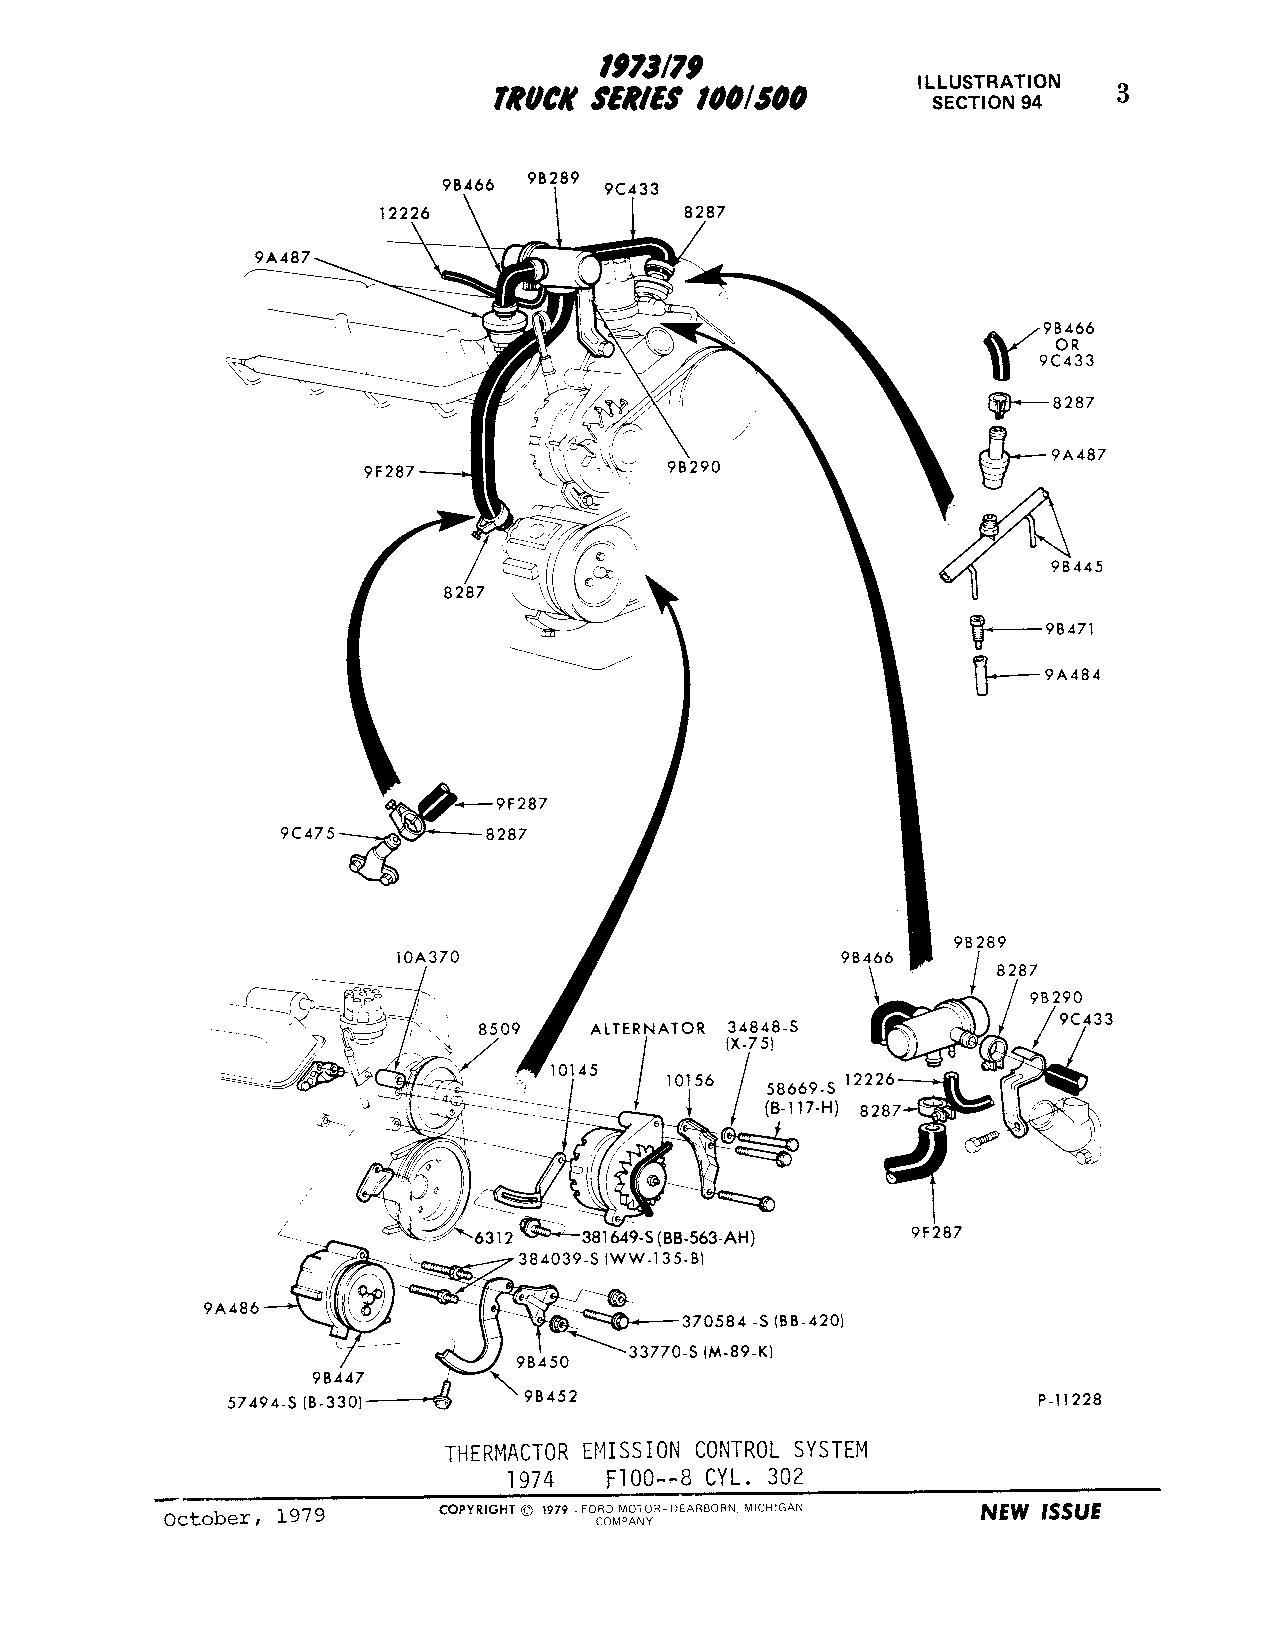 Help Finding New Stock Exhaust Manifolds For 74 F100 302